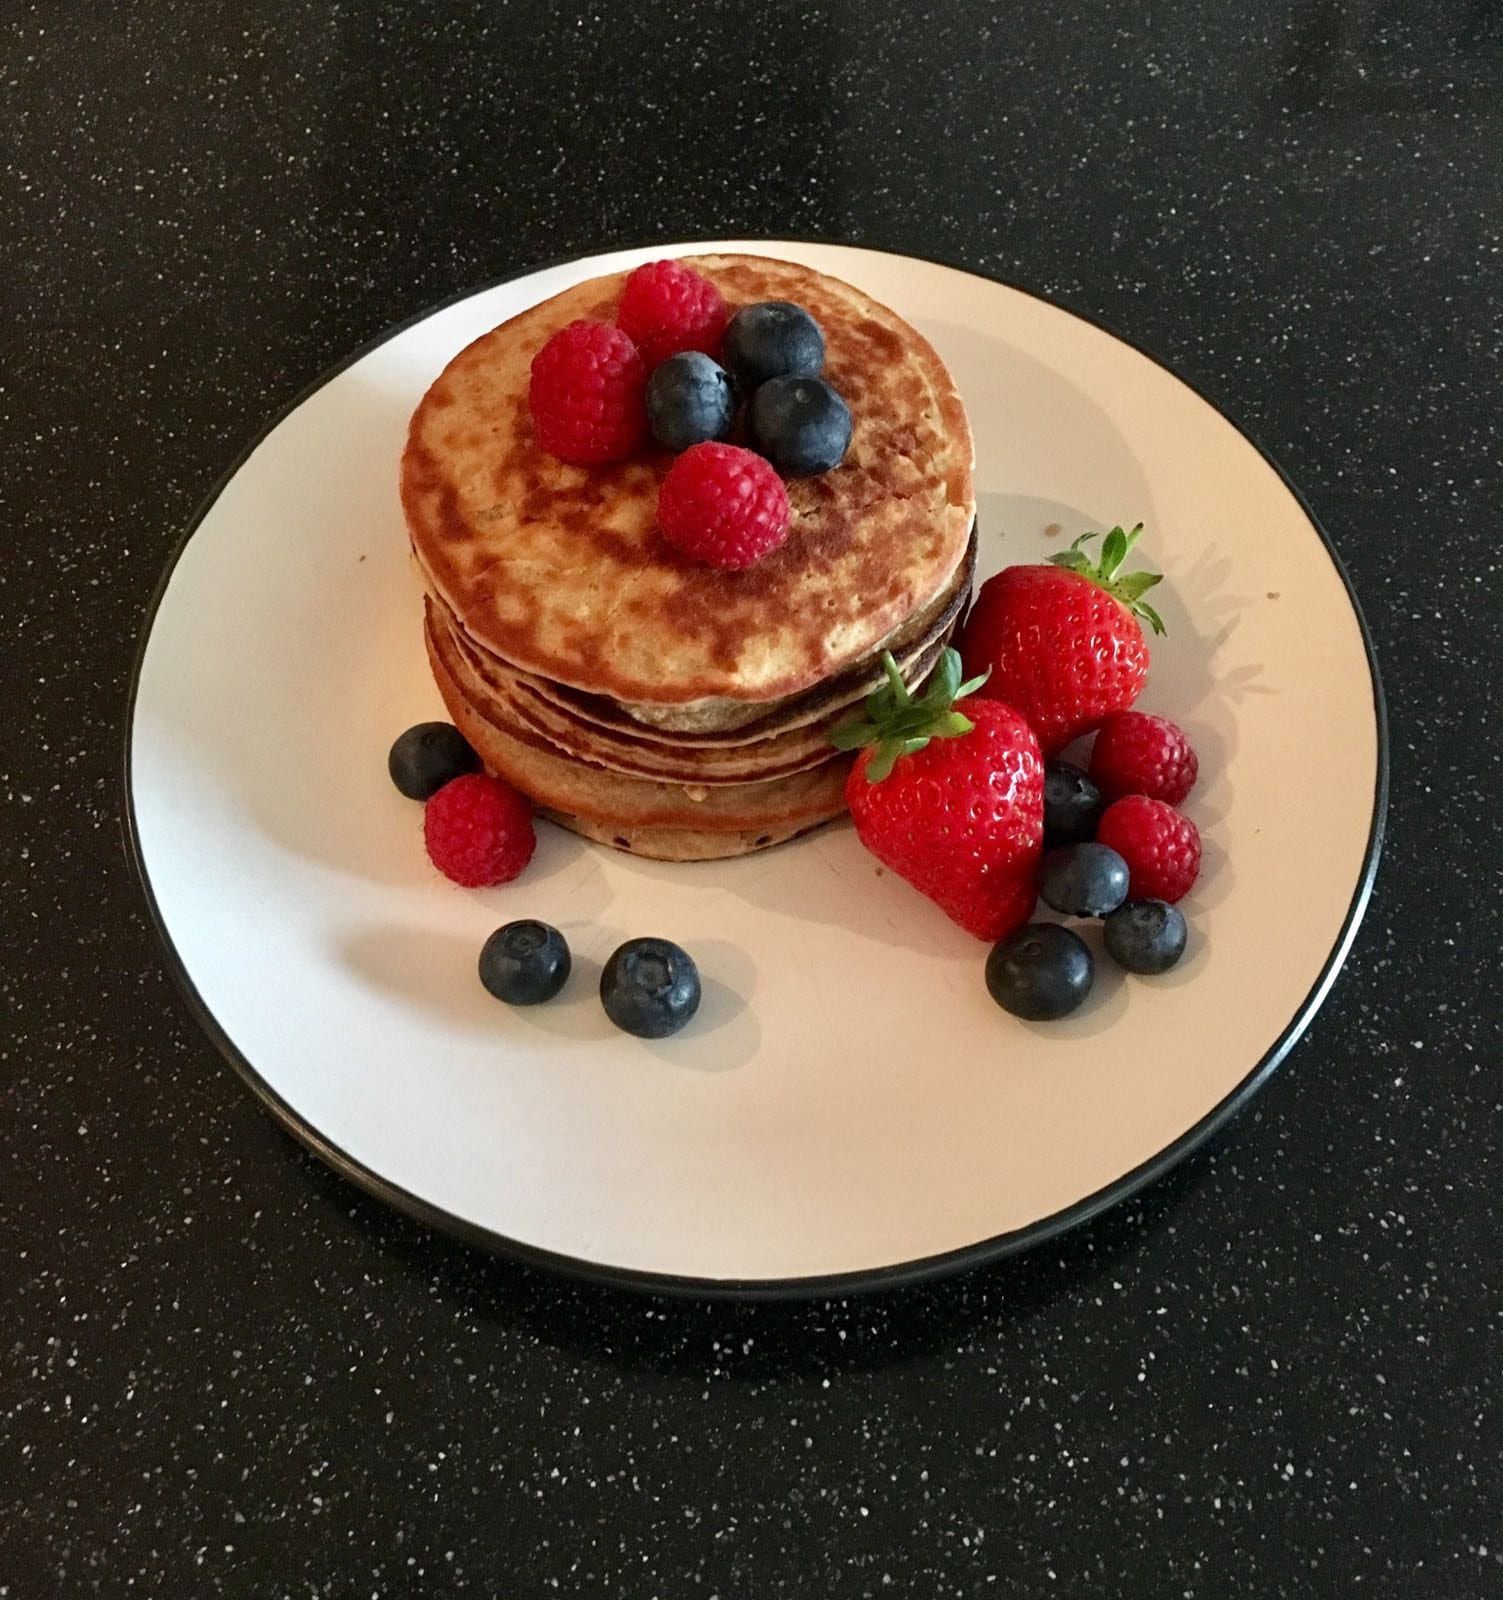 Protein smoothie pancakes with strawberries and blueberries